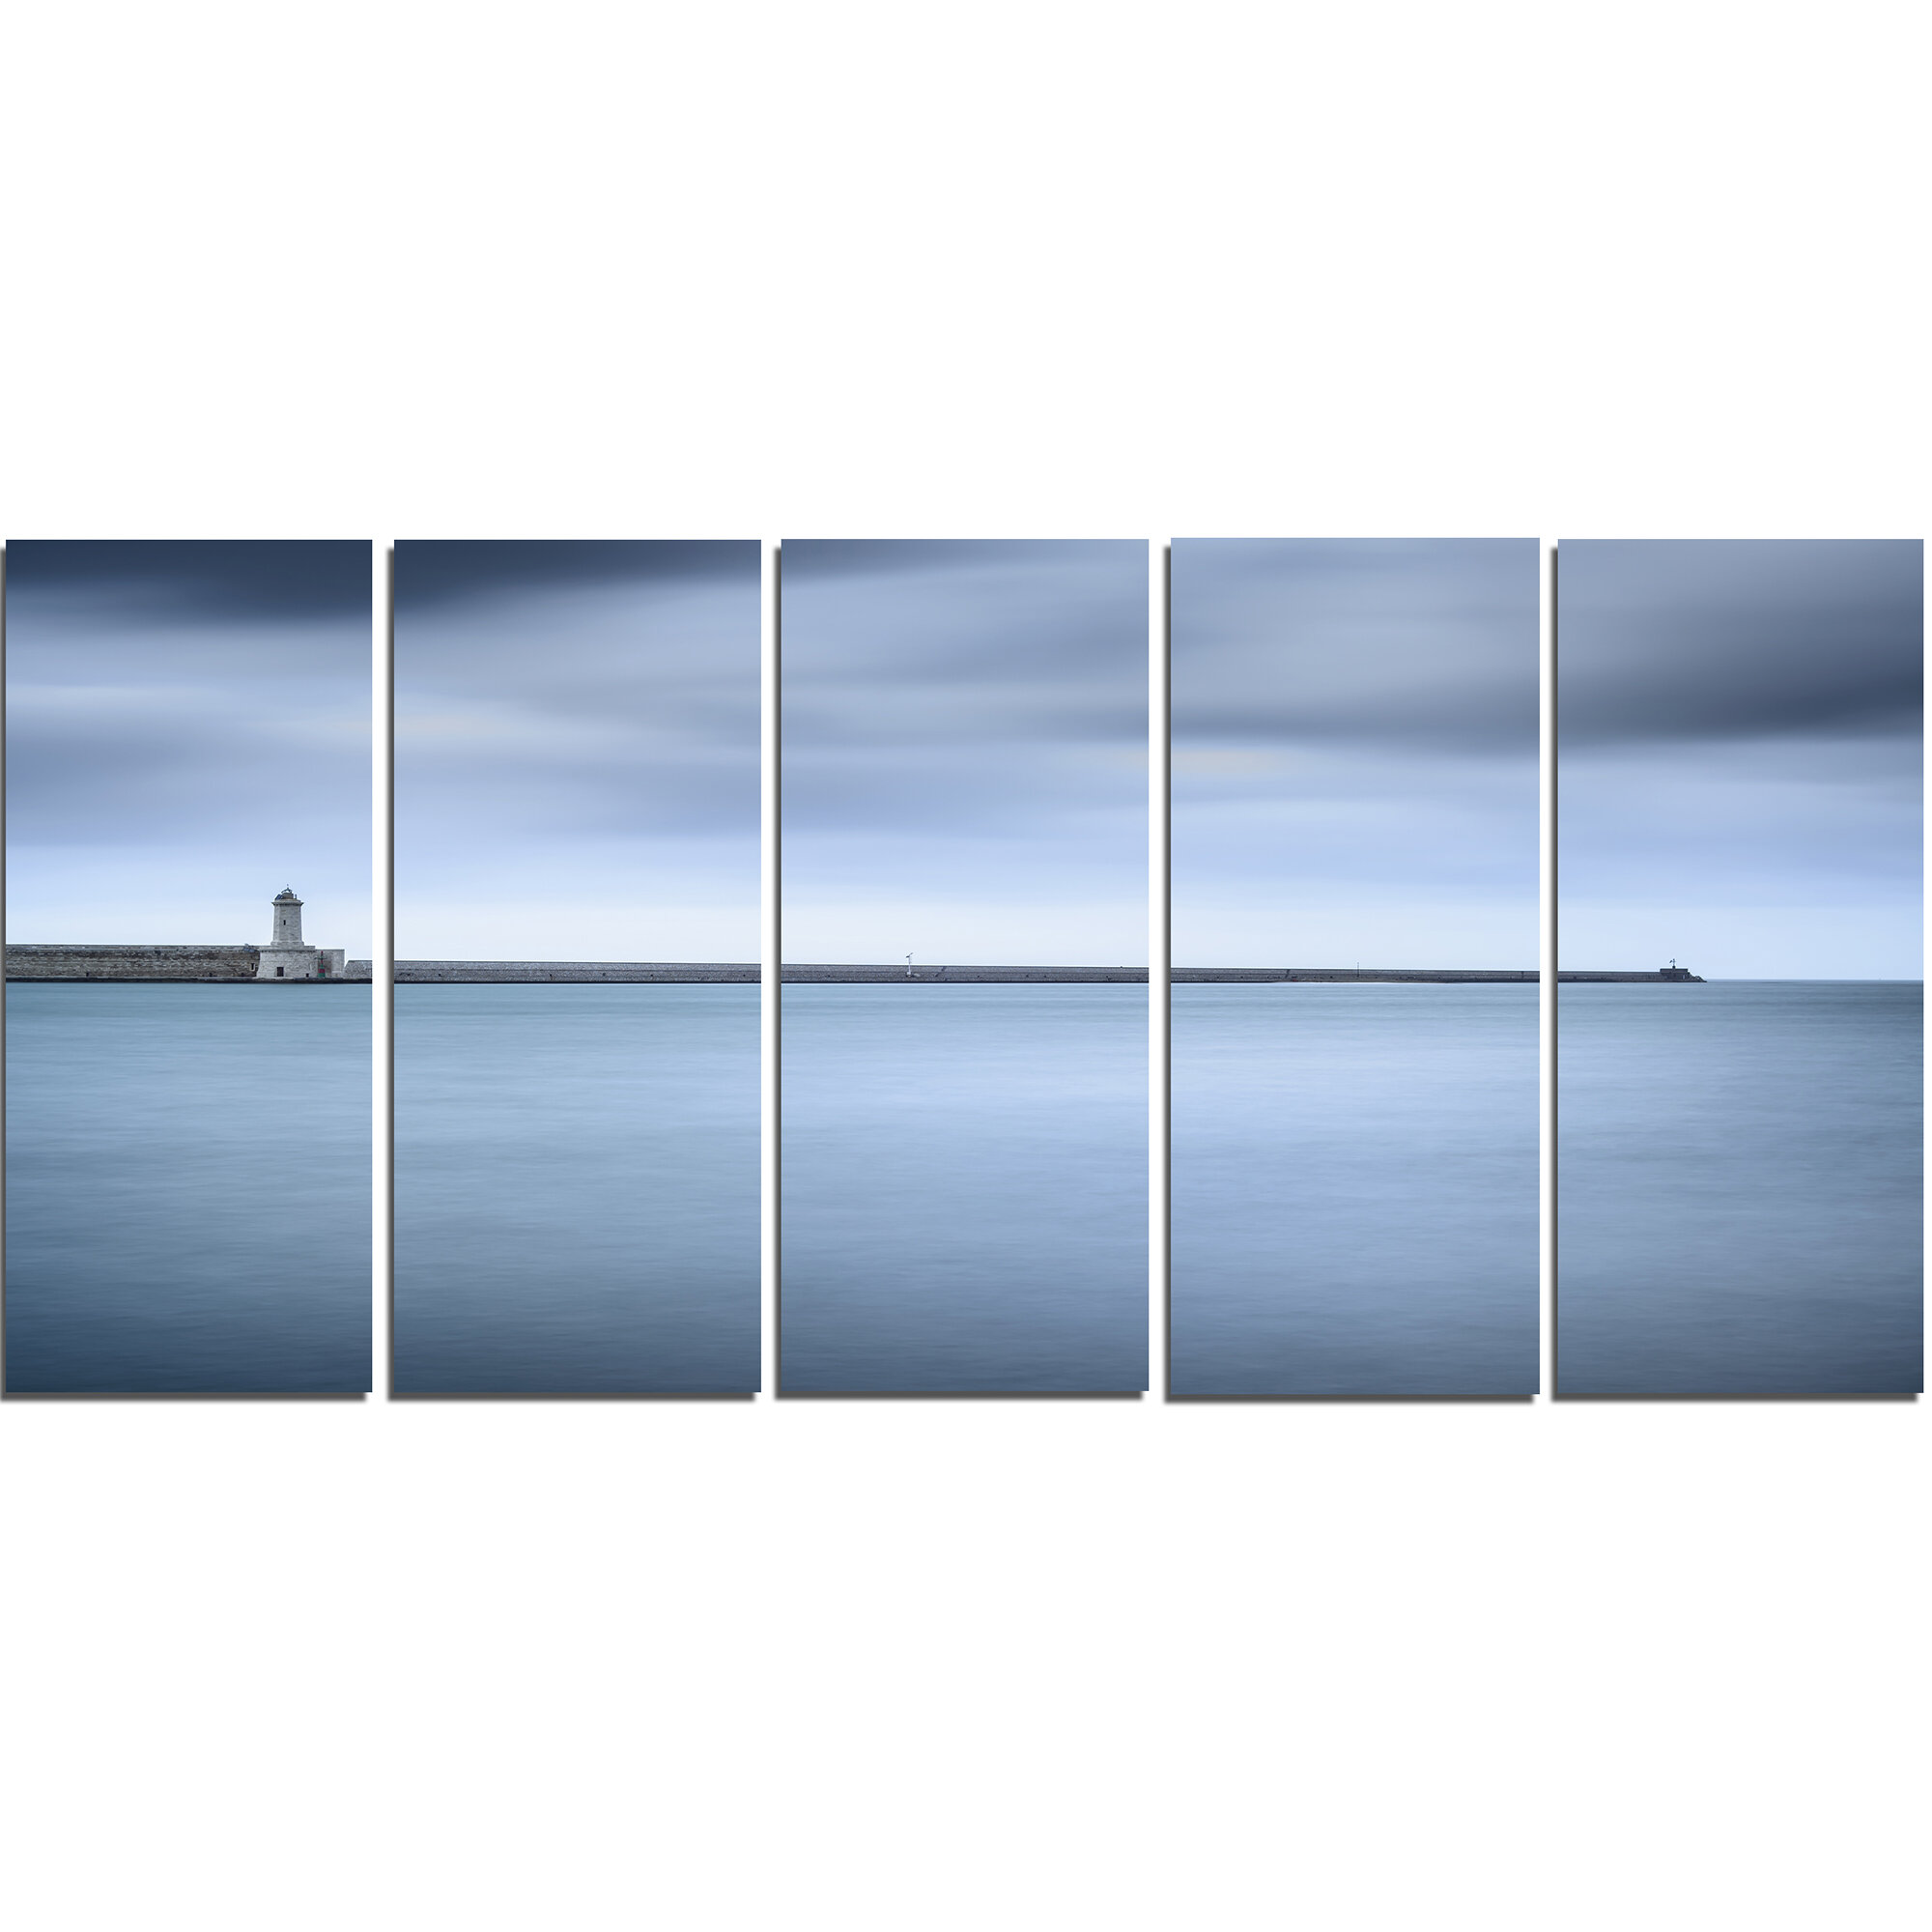 Designart Breakwater And Soft Water Under Clouds 5 Piece Wall Art On Wrapped Canvas Set Wayfair